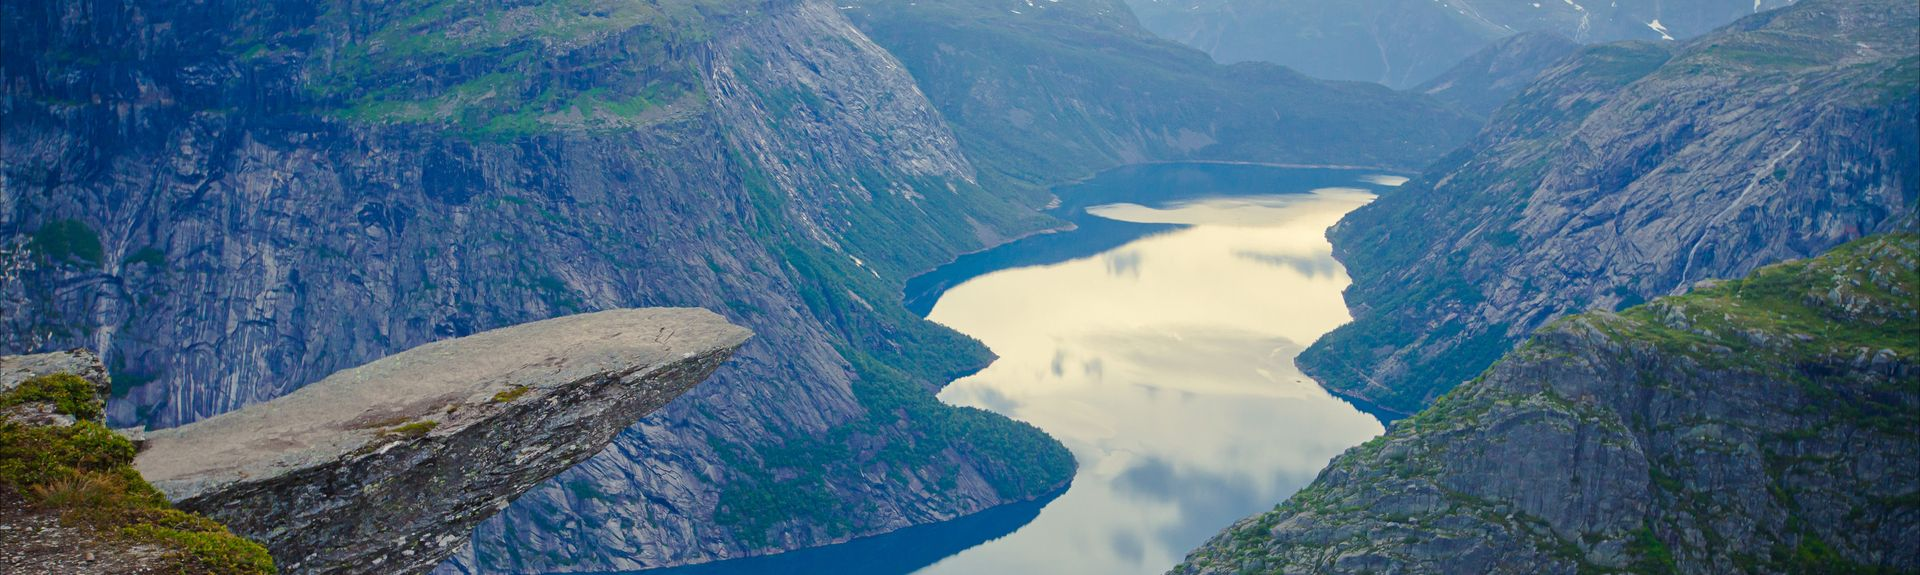 Fjord-Norge, Norge